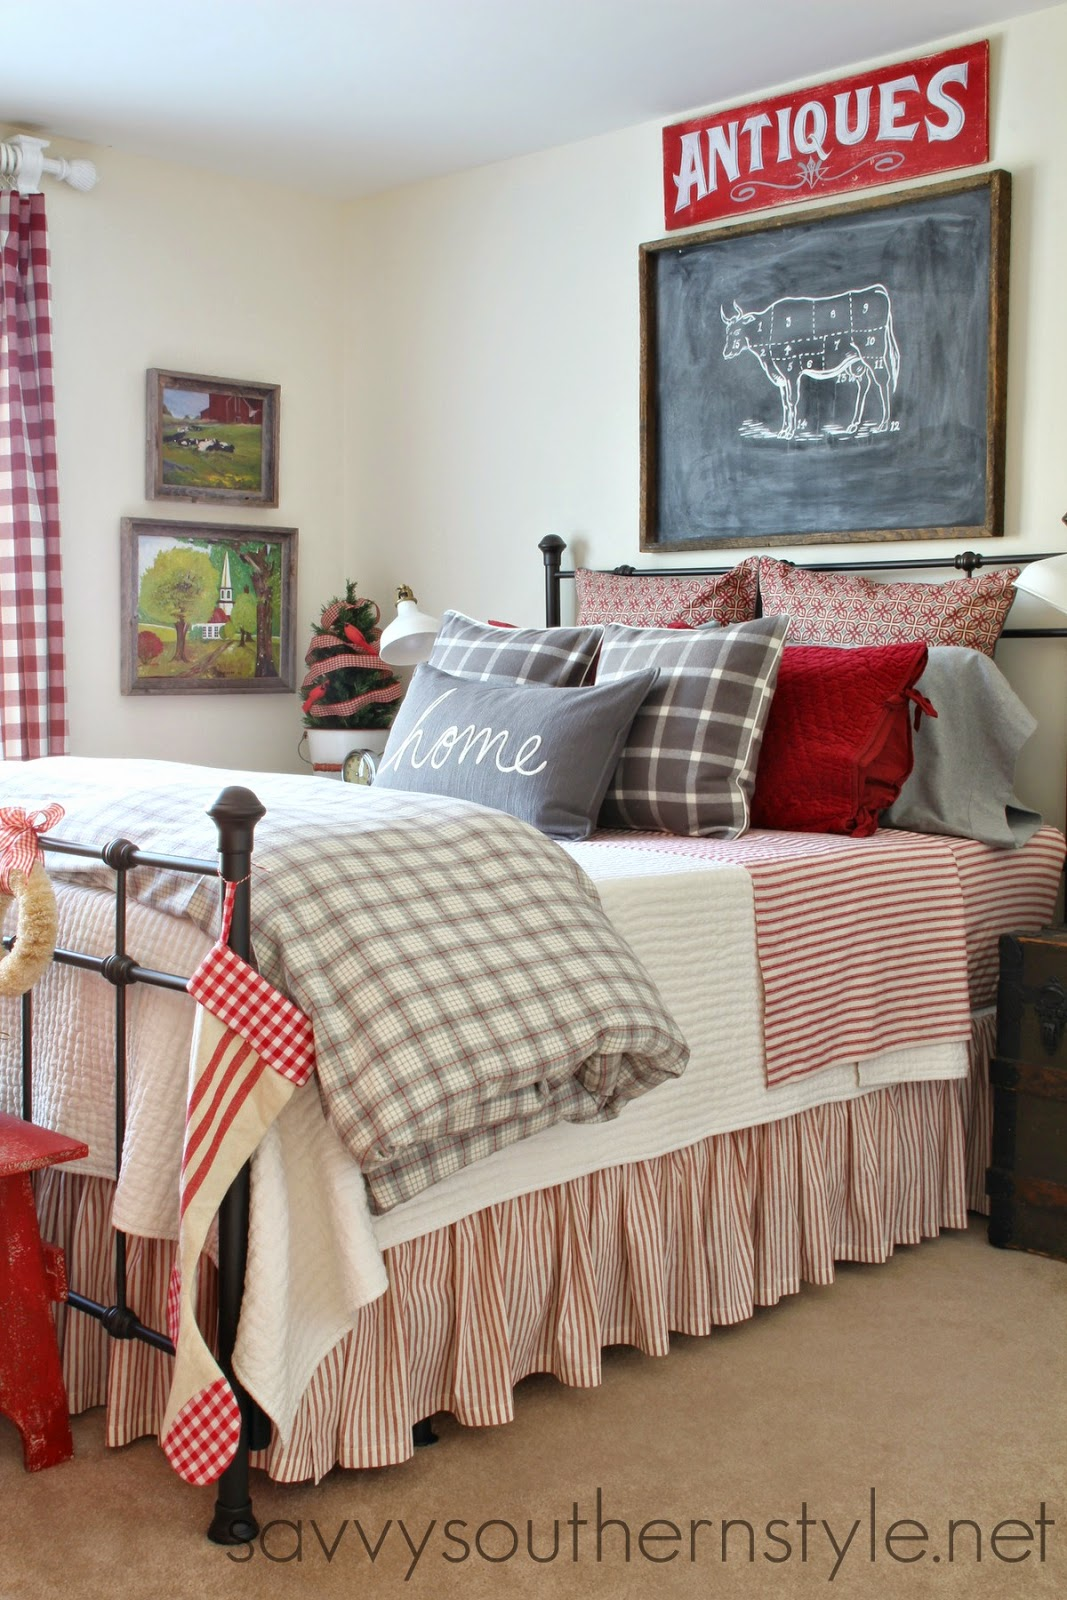 Savvy southern style farmhouse guest room christmas for Farmhouse style bedroom